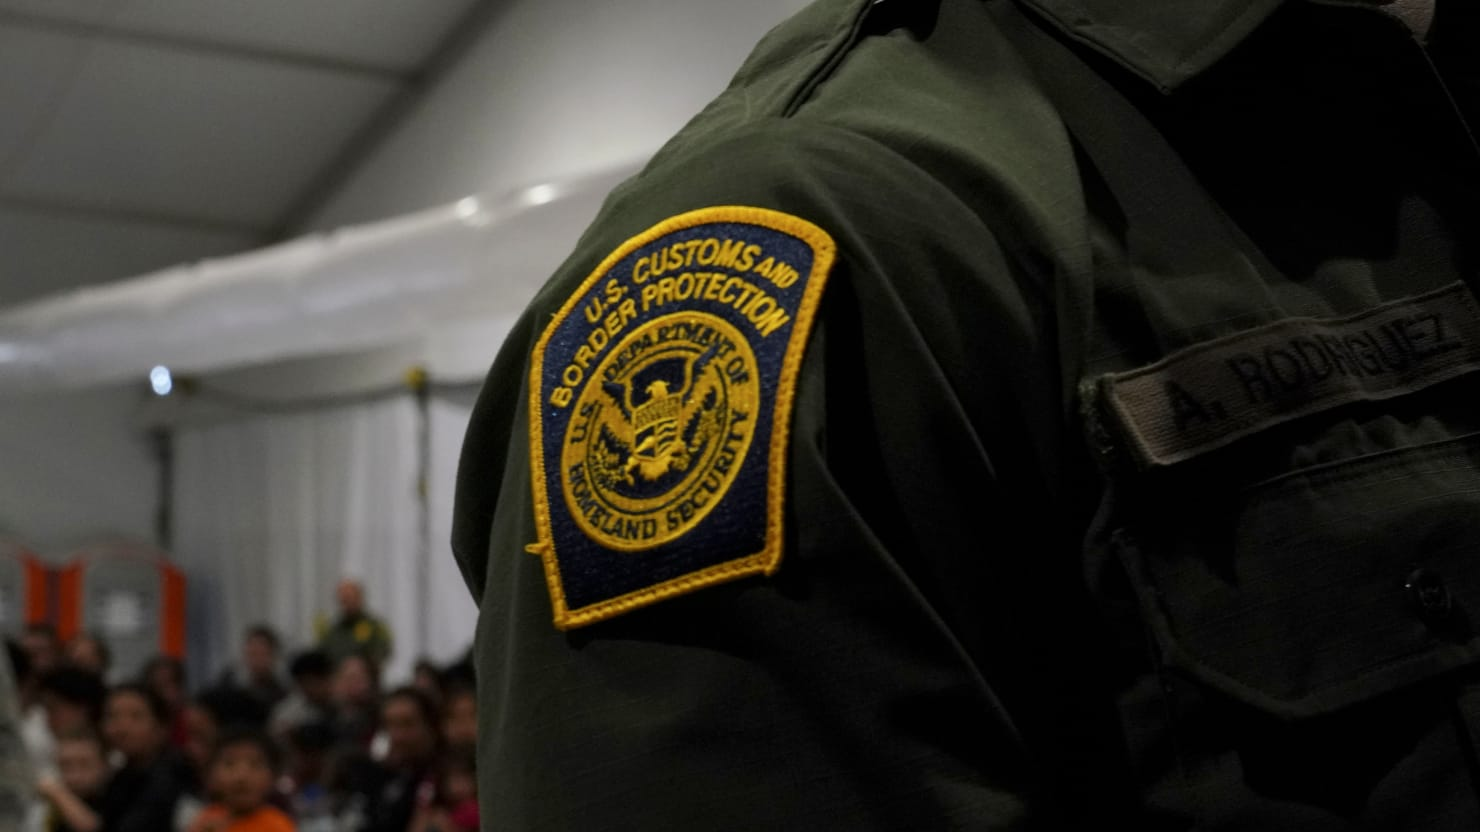 Two Men Have Died in ICE Custody Since...